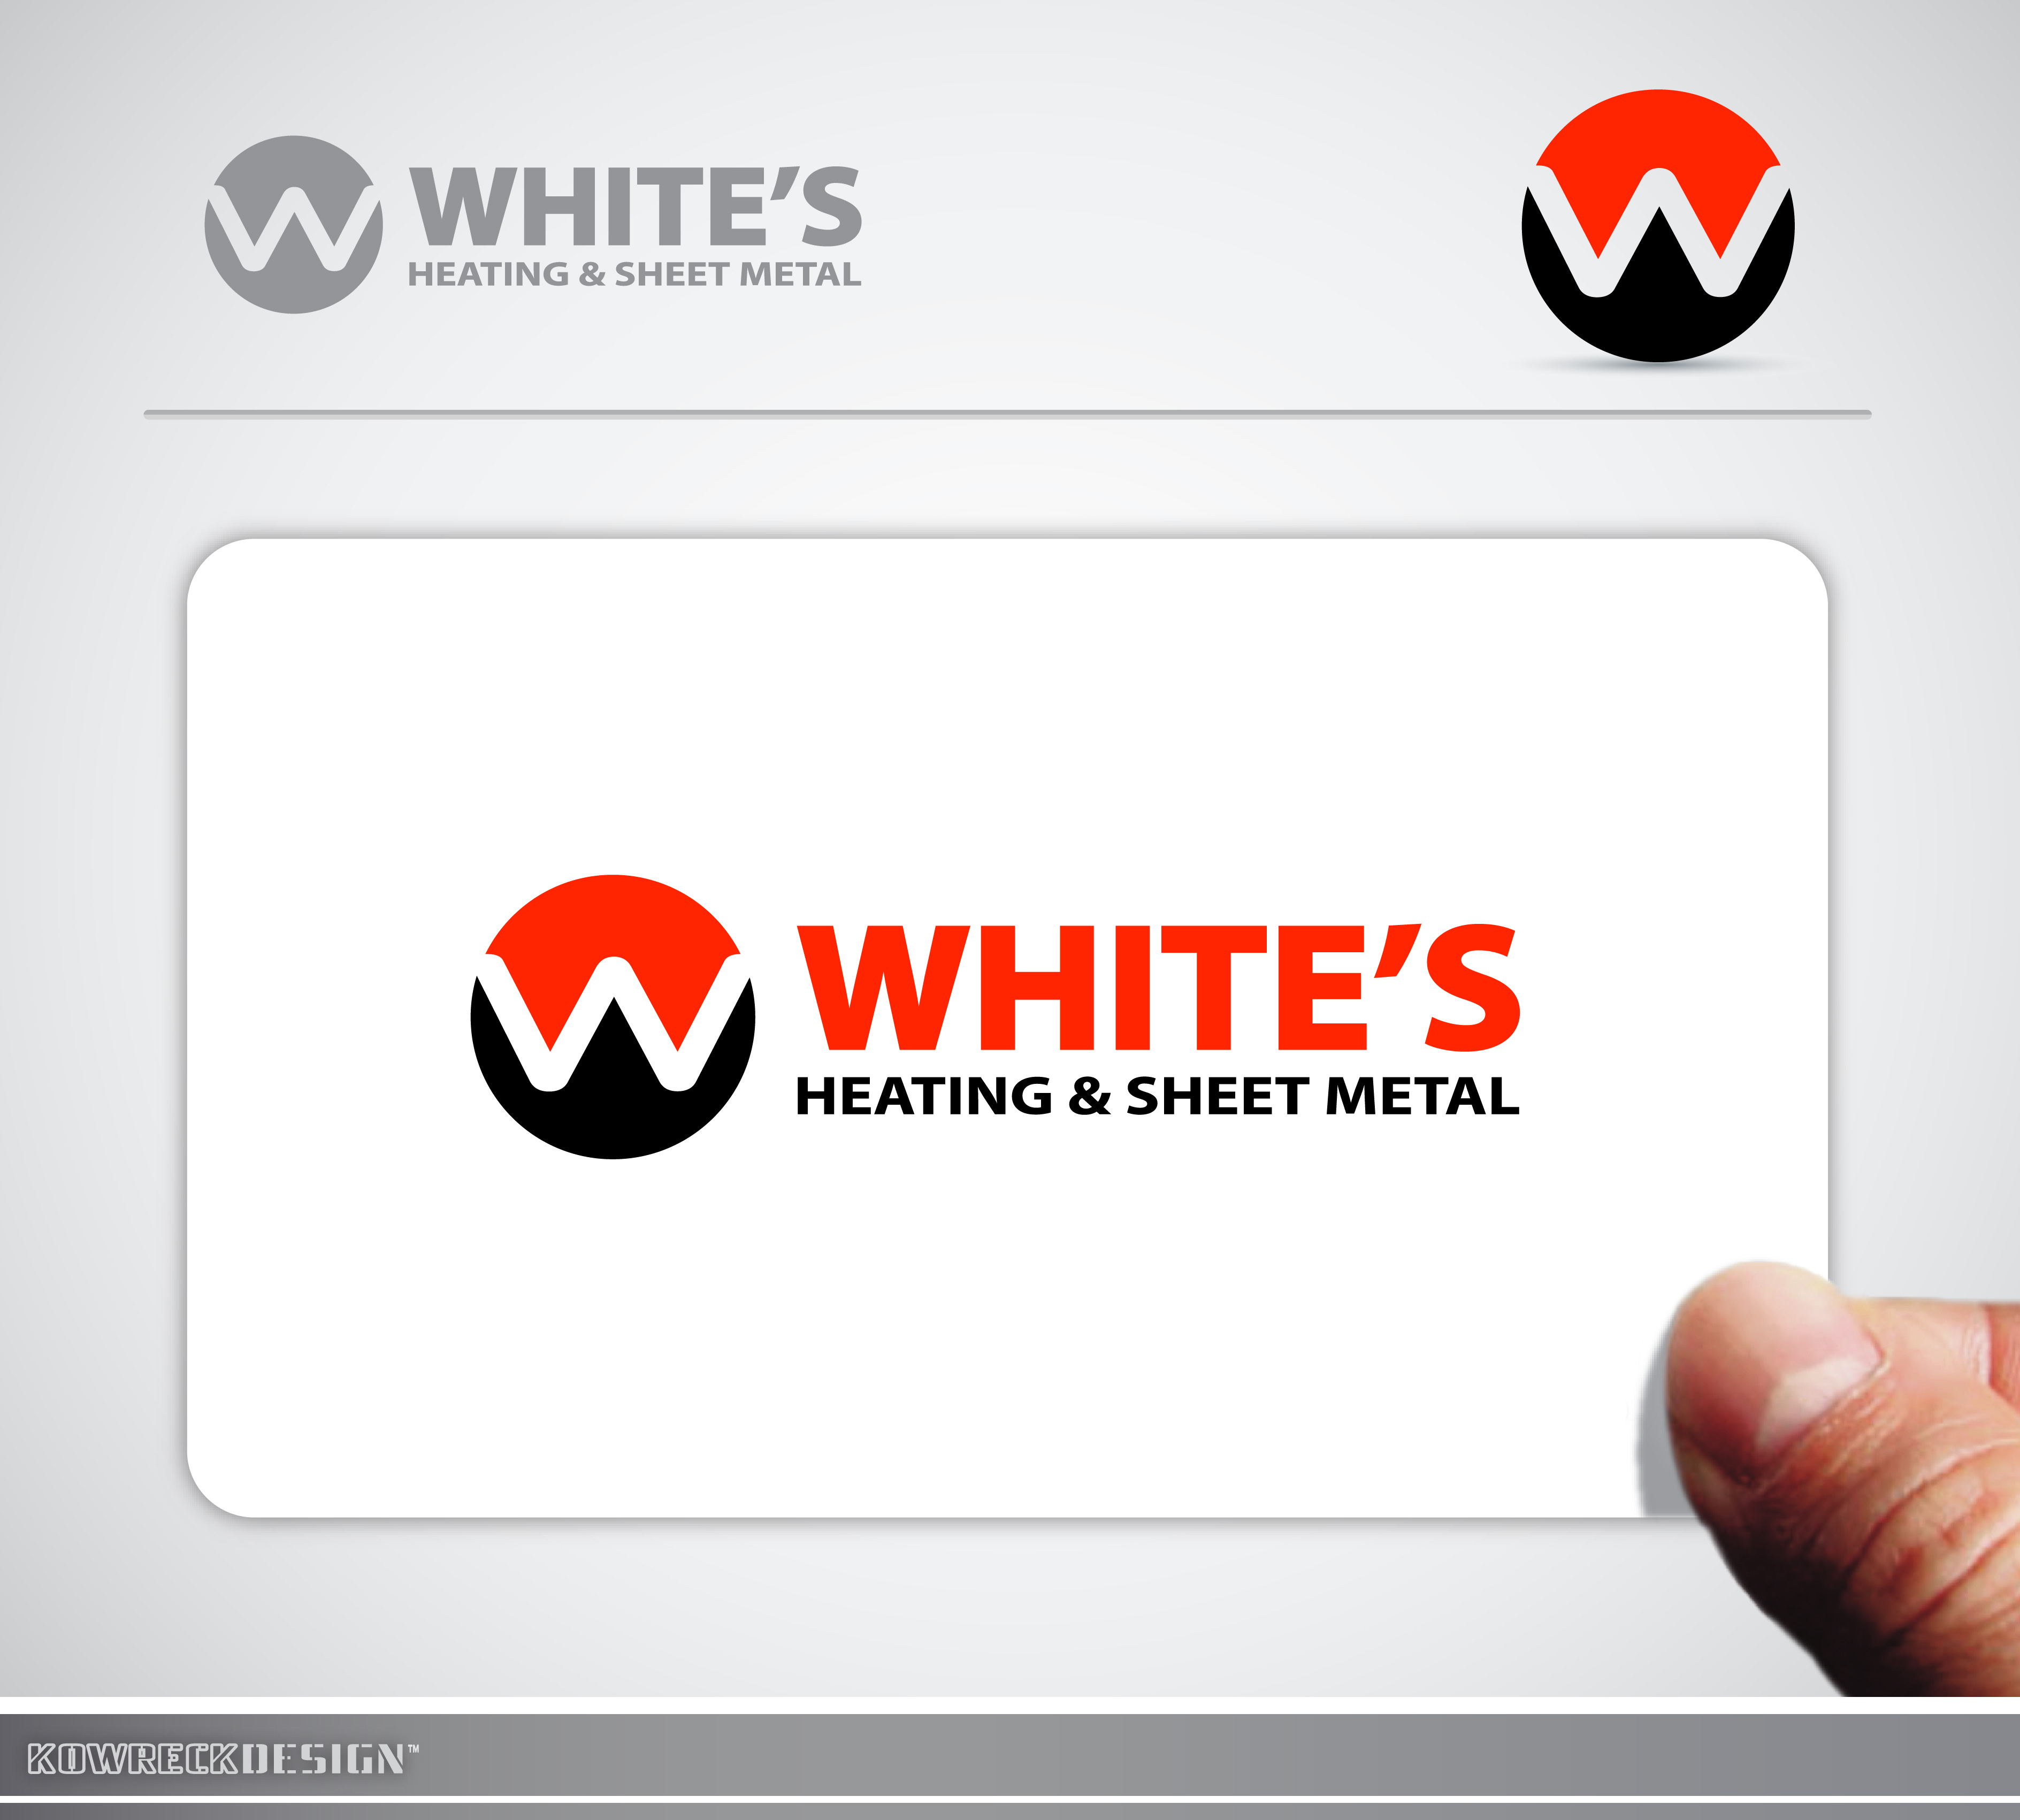 Logo Design by kowreck - Entry No. 95 in the Logo Design Contest Imaginative Logo Design for White's Heating and Sheet Metal.